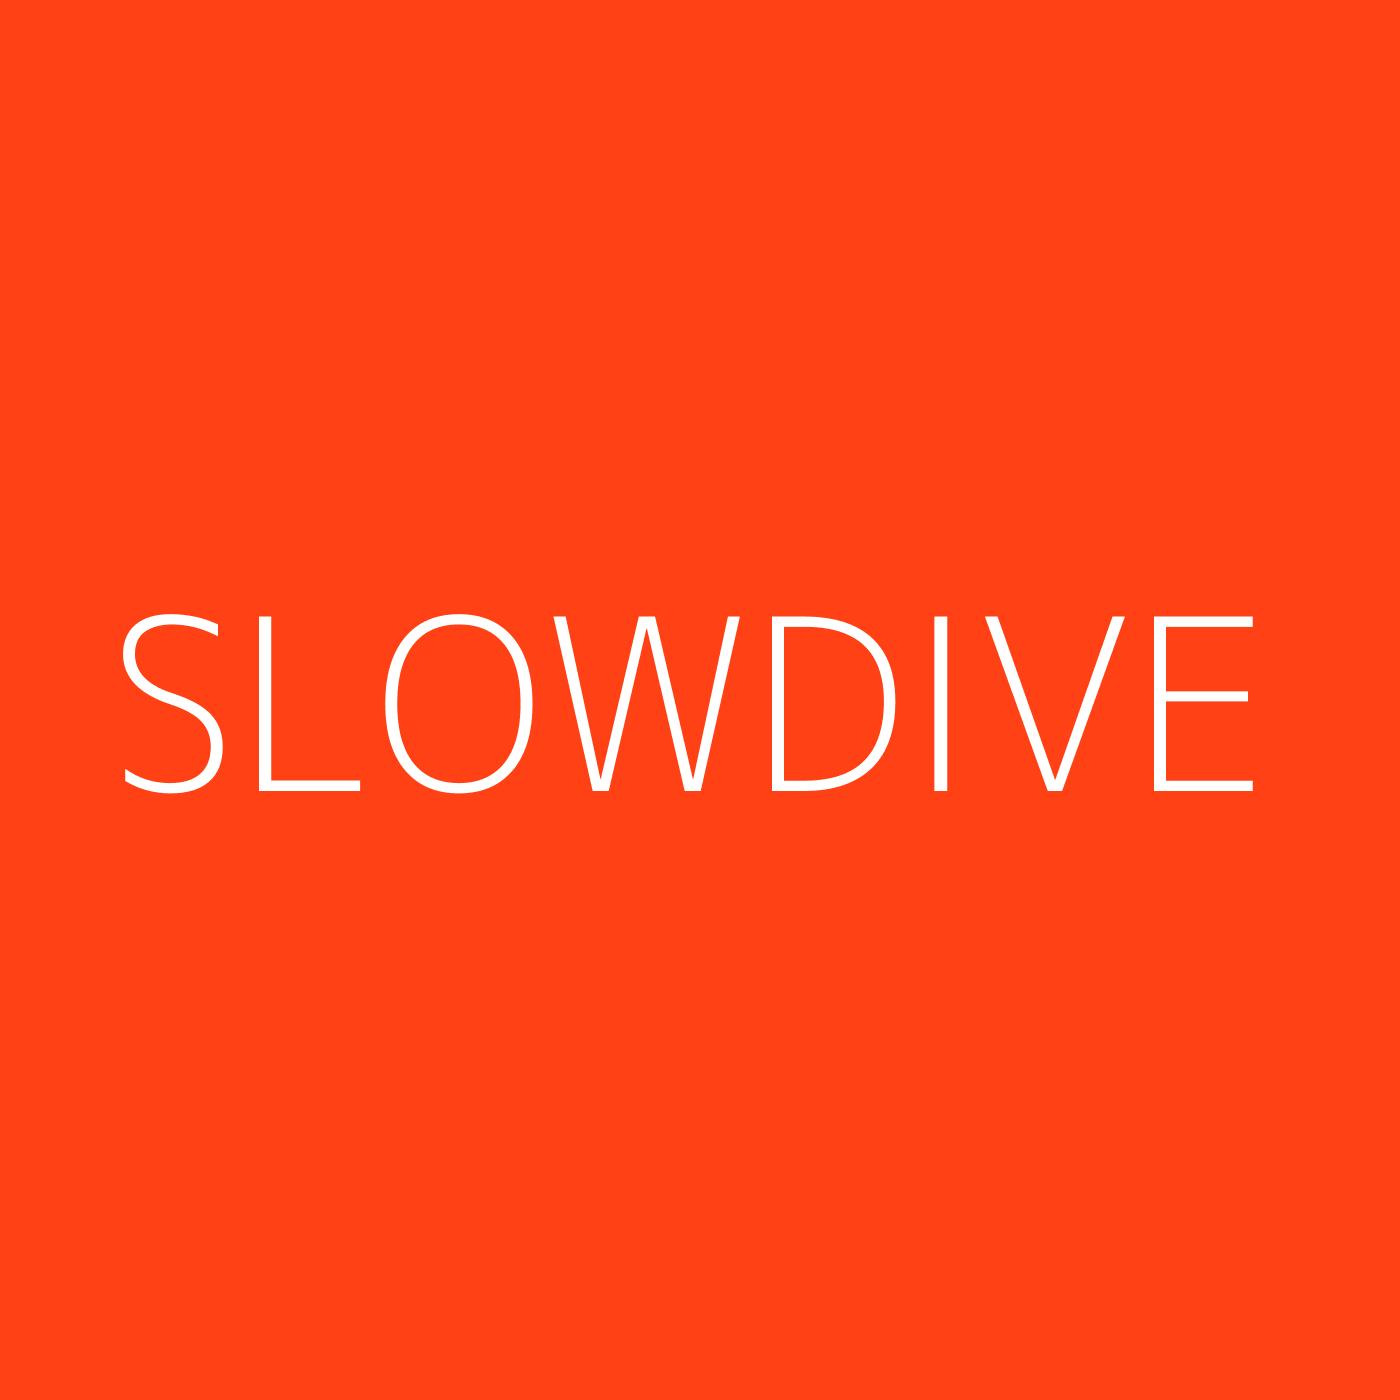 Slowdive Playlist Artwork